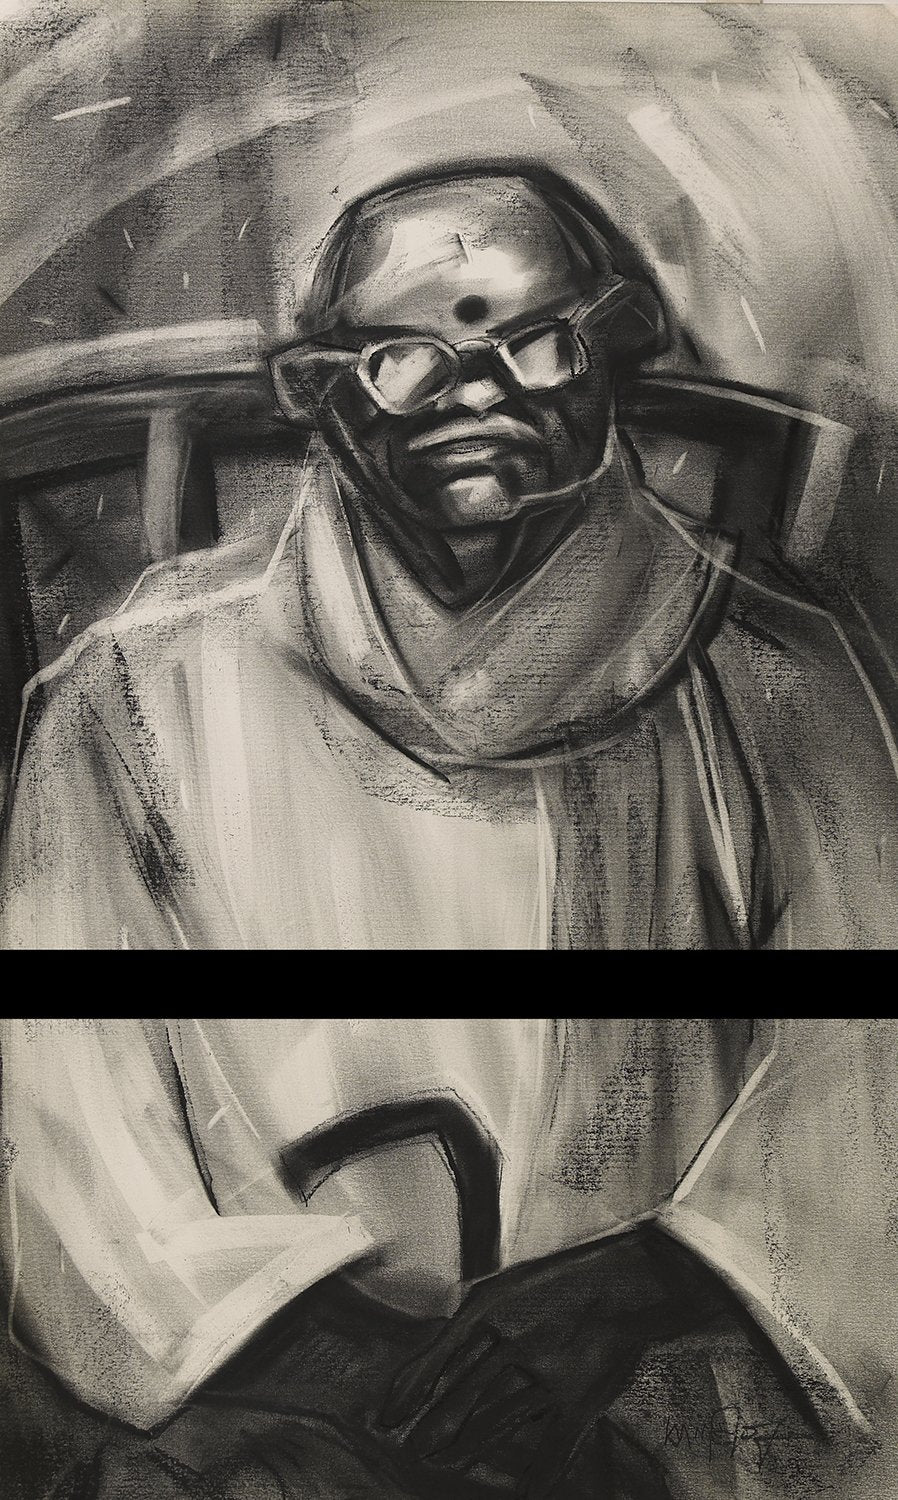 Untitled 126|S. Mark Rathinaraj- Charcoal on Board, , 28.5 x 16.5 inches